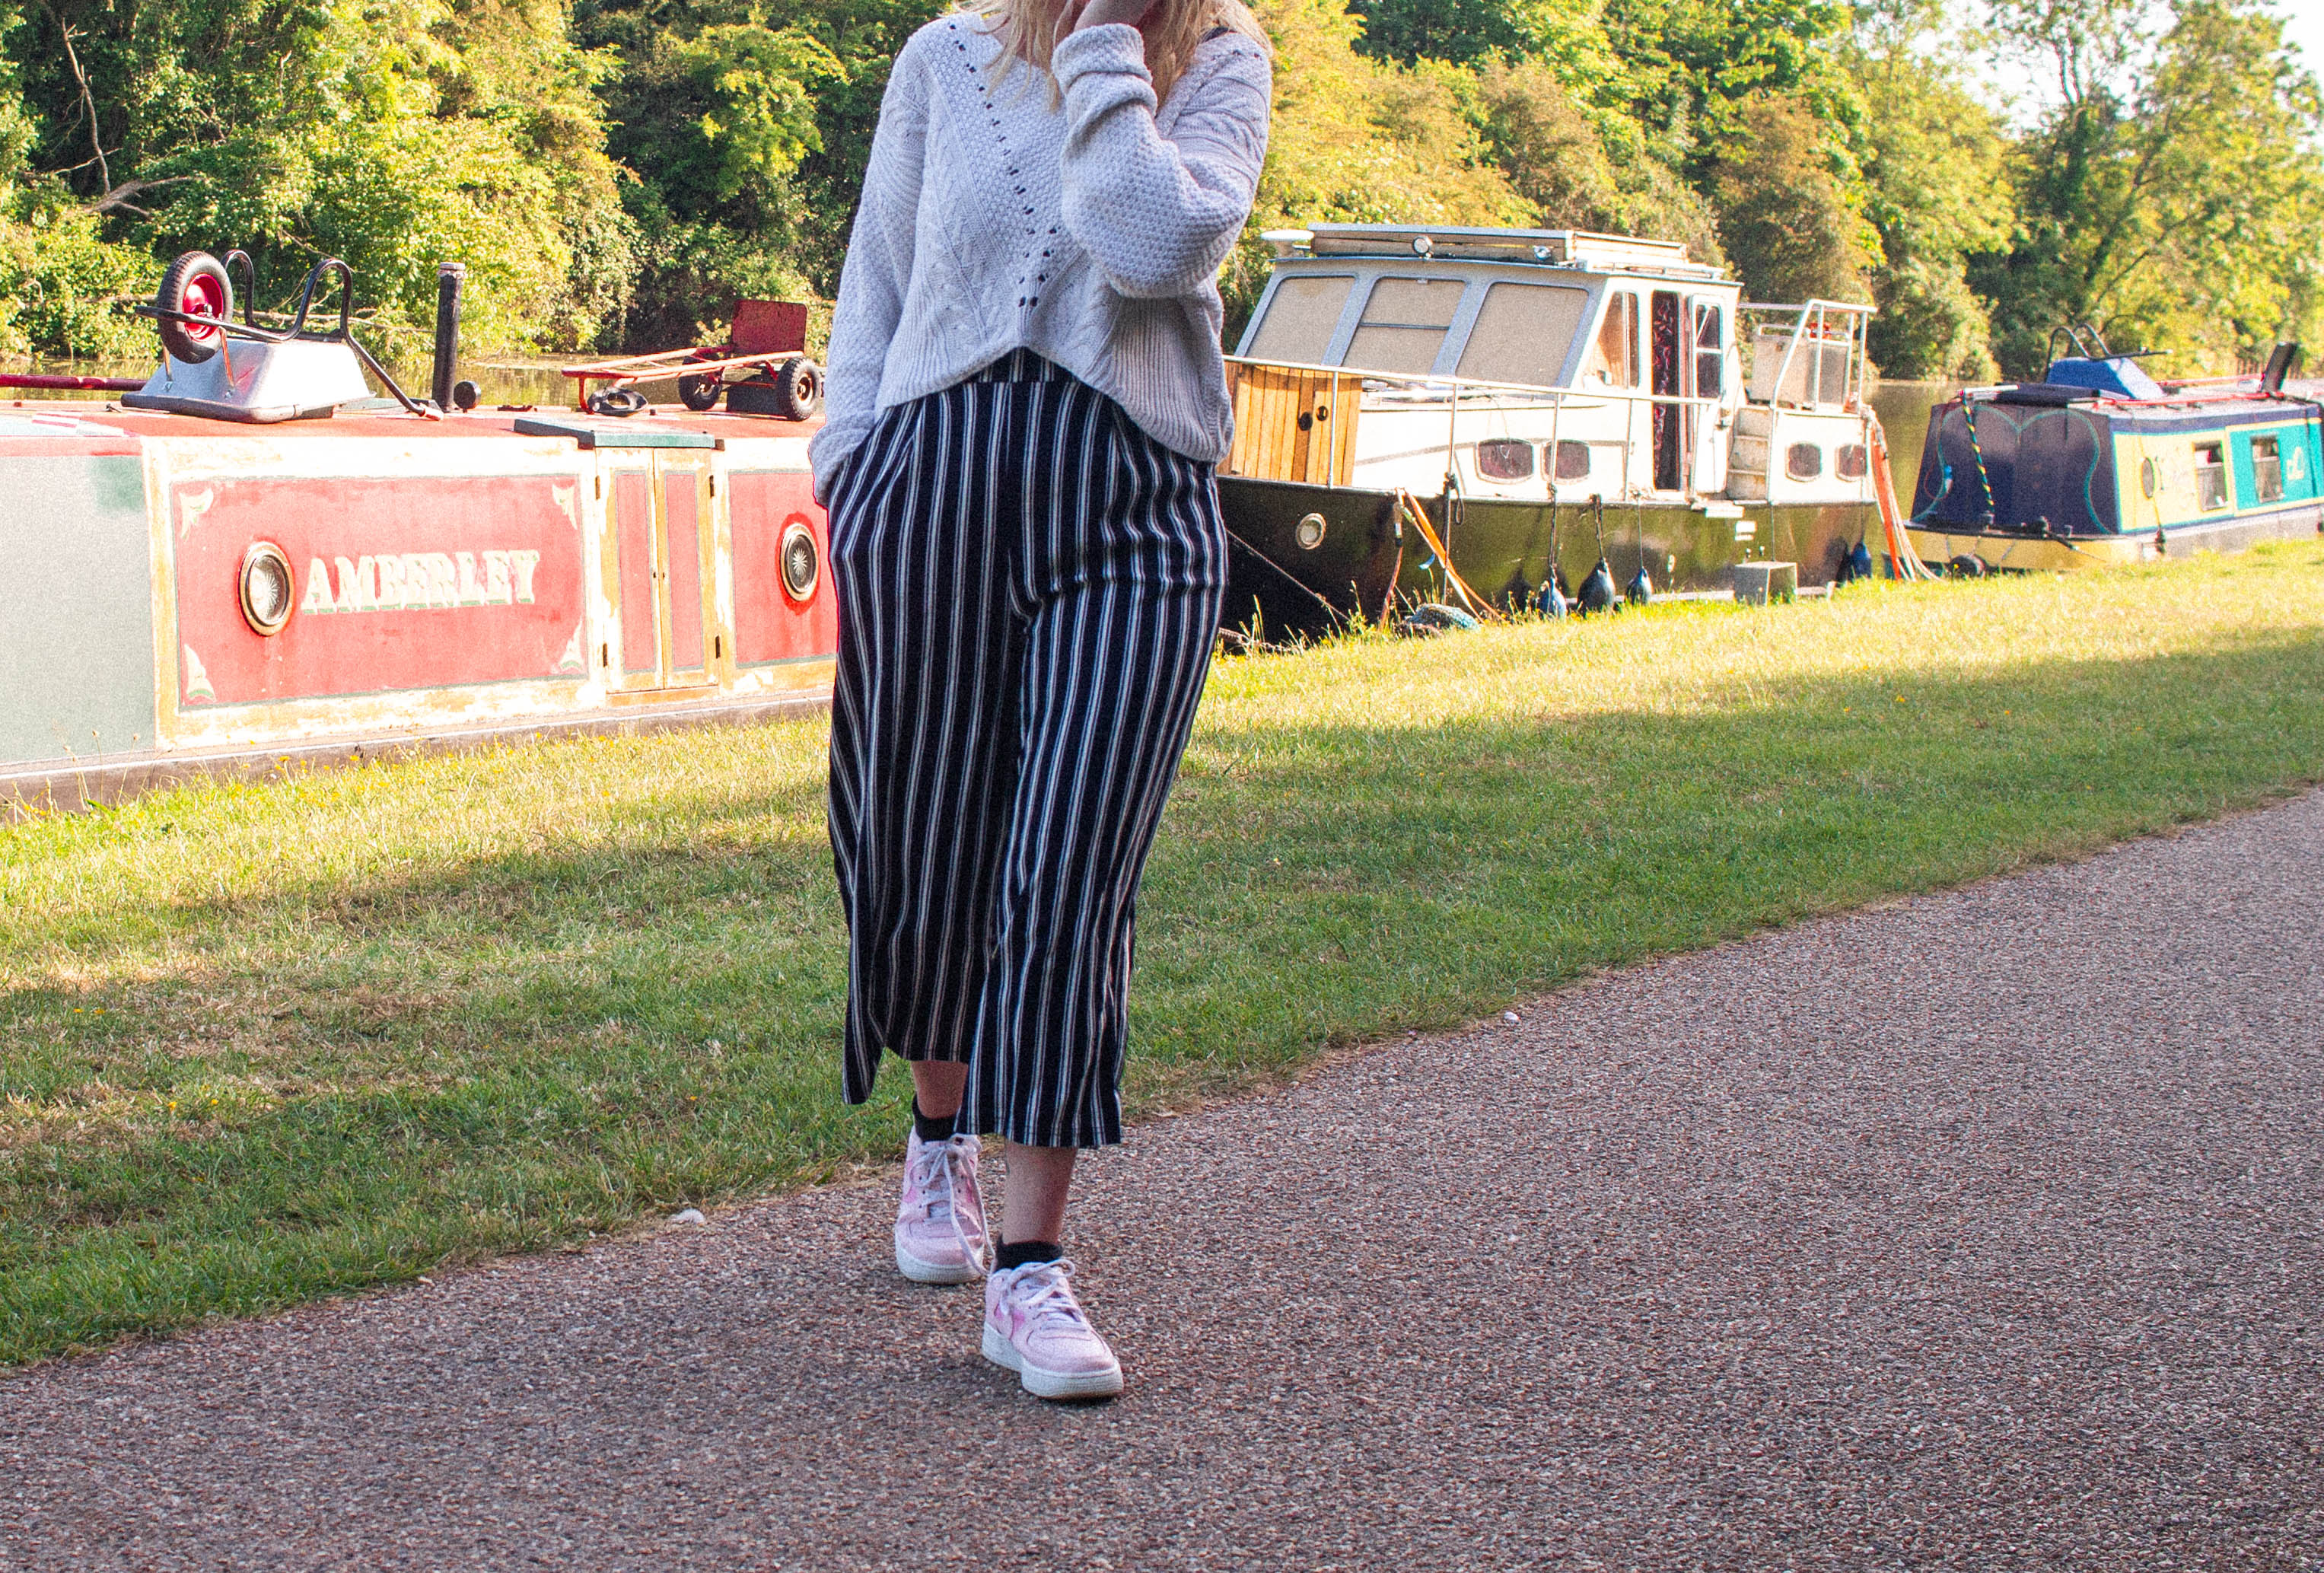 Fashion blogger chloeharriets - outfit details - positive habits for happiness